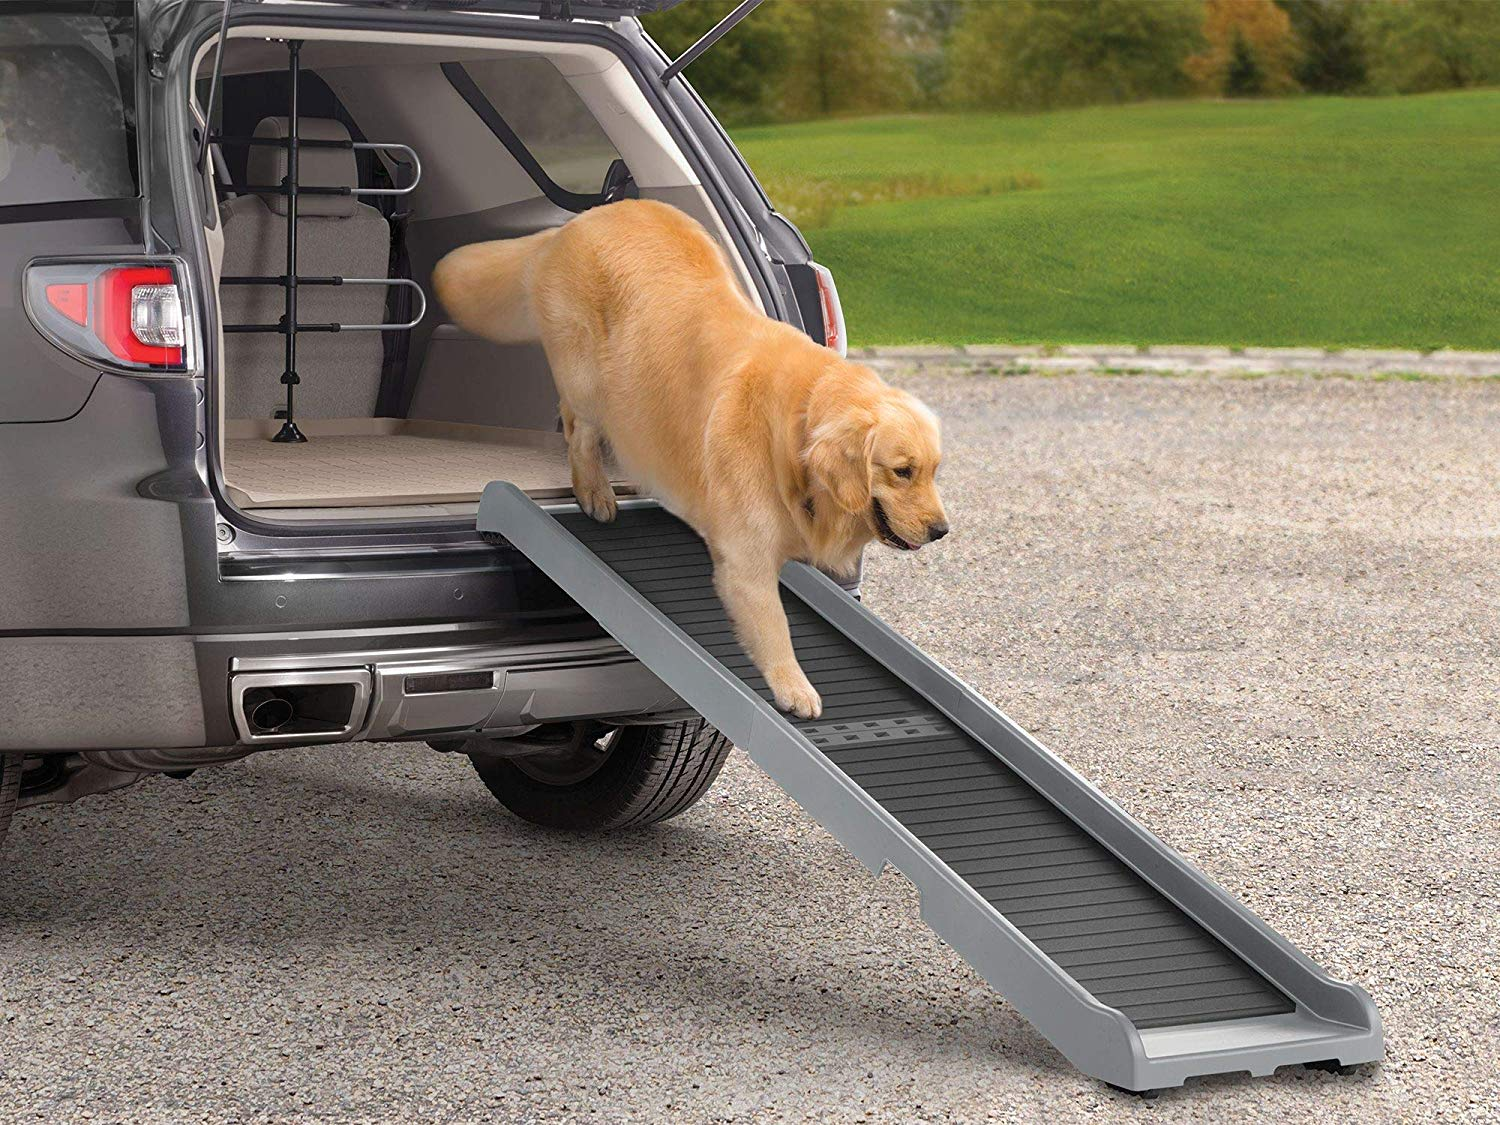 Best Dog Ramp - Reviews of Dog Ramps For Car, Bed, Stairs and More